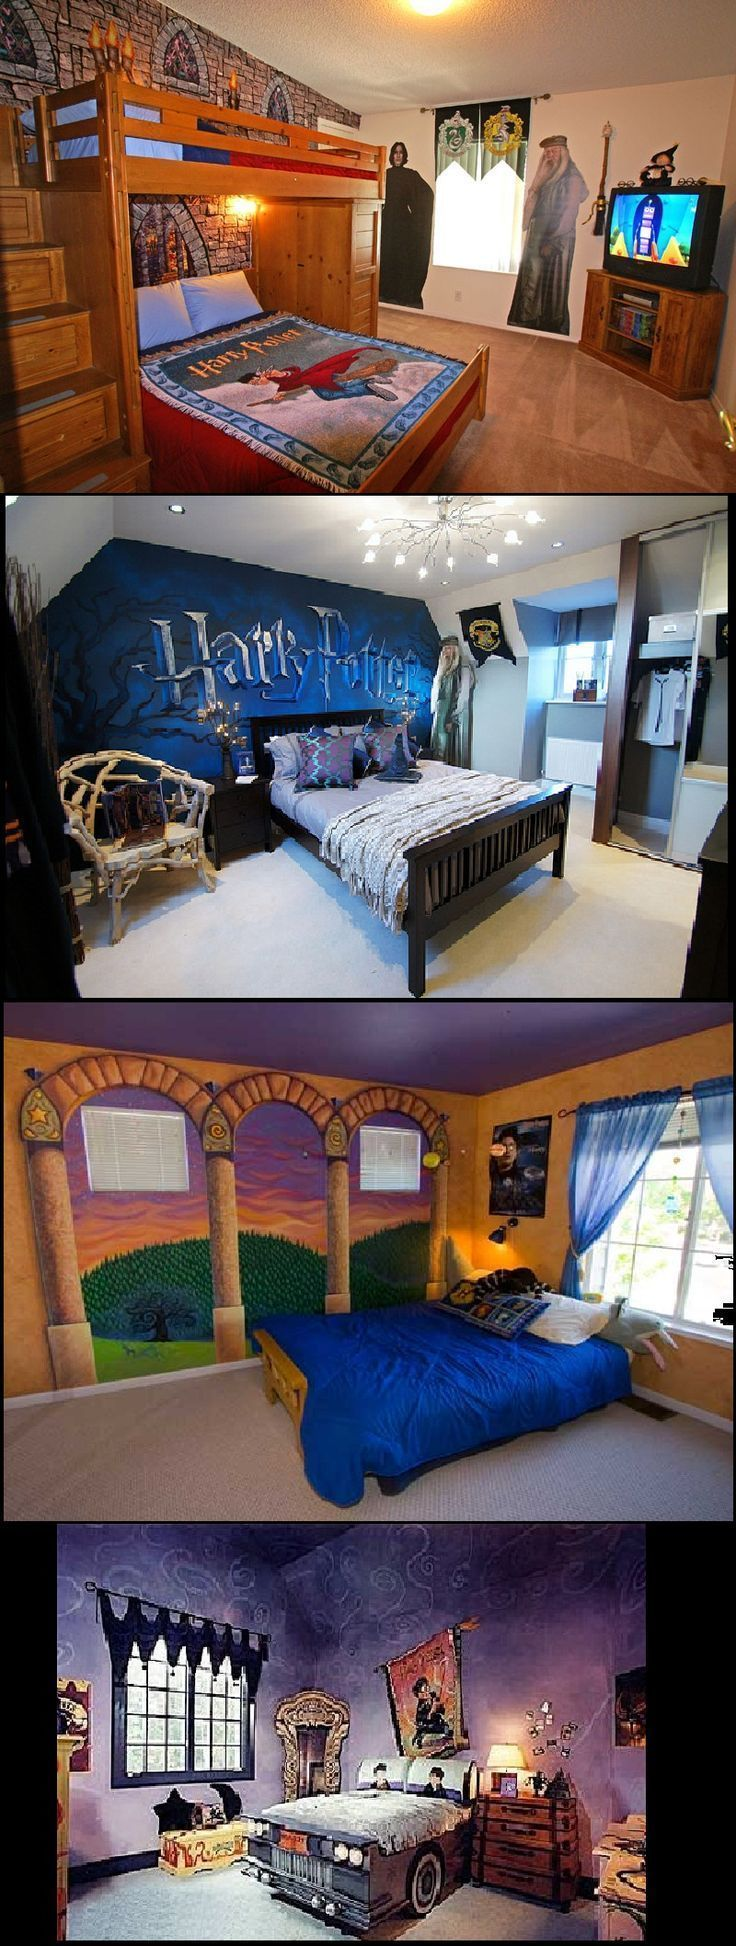 Harry Potter Themed Bedroom Ideas – #awesome #Bedroom #Harry #Ideas #Potter